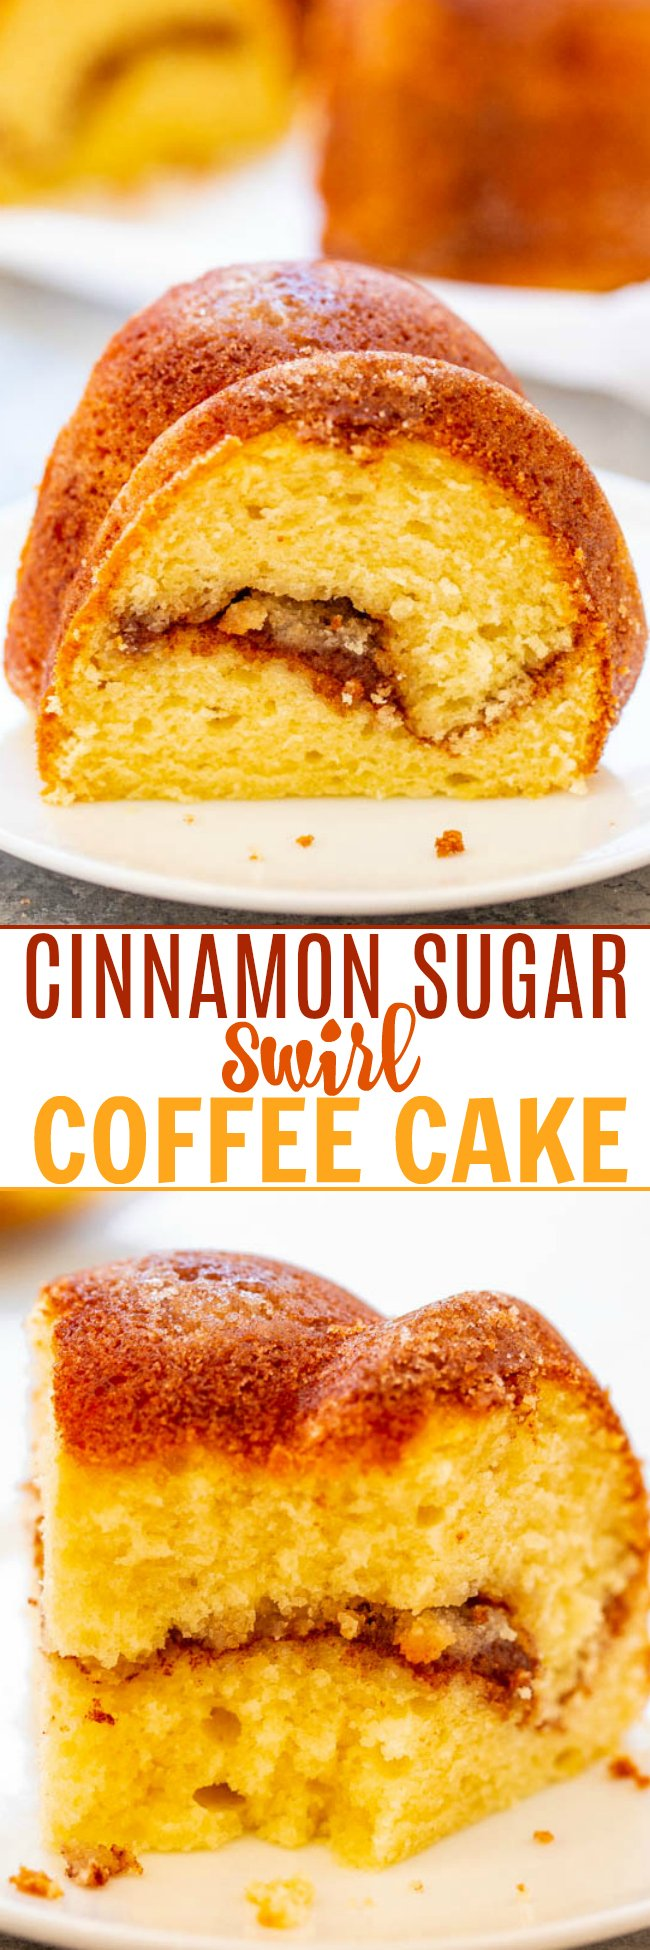 Cinnamon Sugar Swirl Coffee Cake - Between the cinnamon-sugar crust AND the cinnamon-sugar swirled through the center, this EASY coffee cake is IRRESISTIBLE!! Soft, fluffy, light, and of course it's perfect with coffee!!